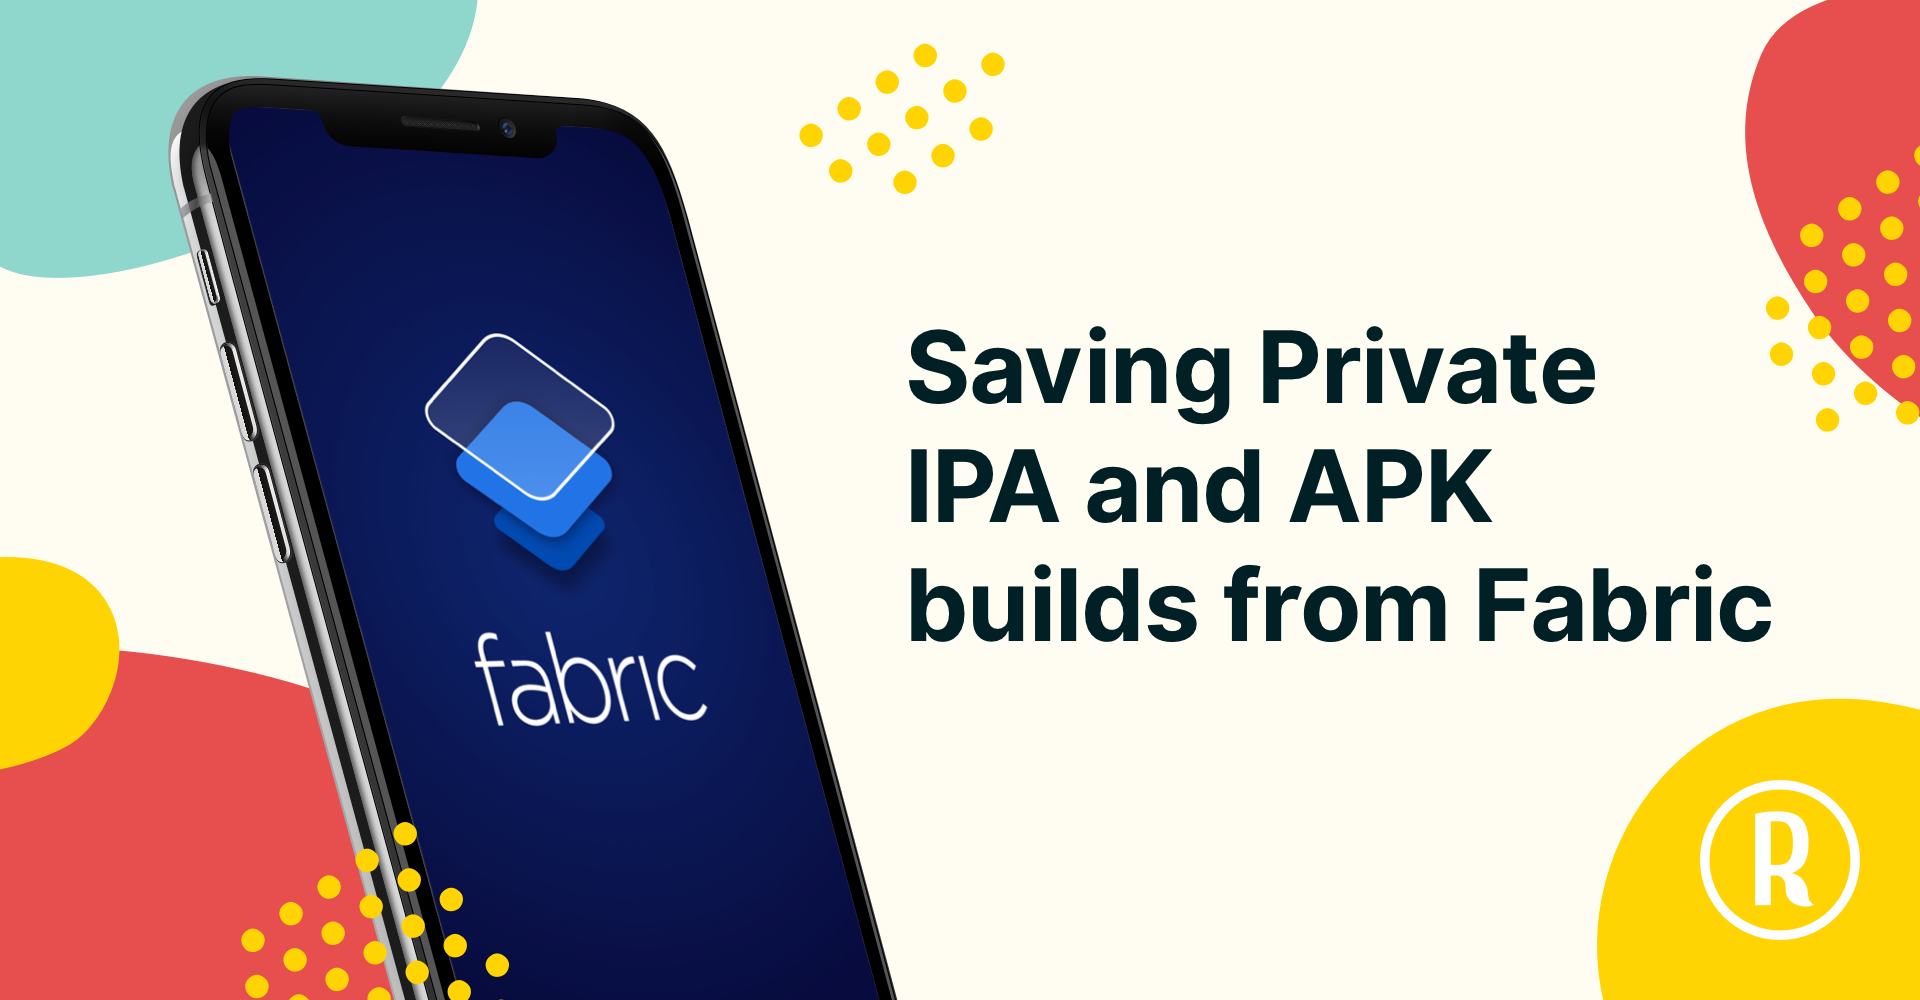 Saving Private IPA and APK builds from Fabric